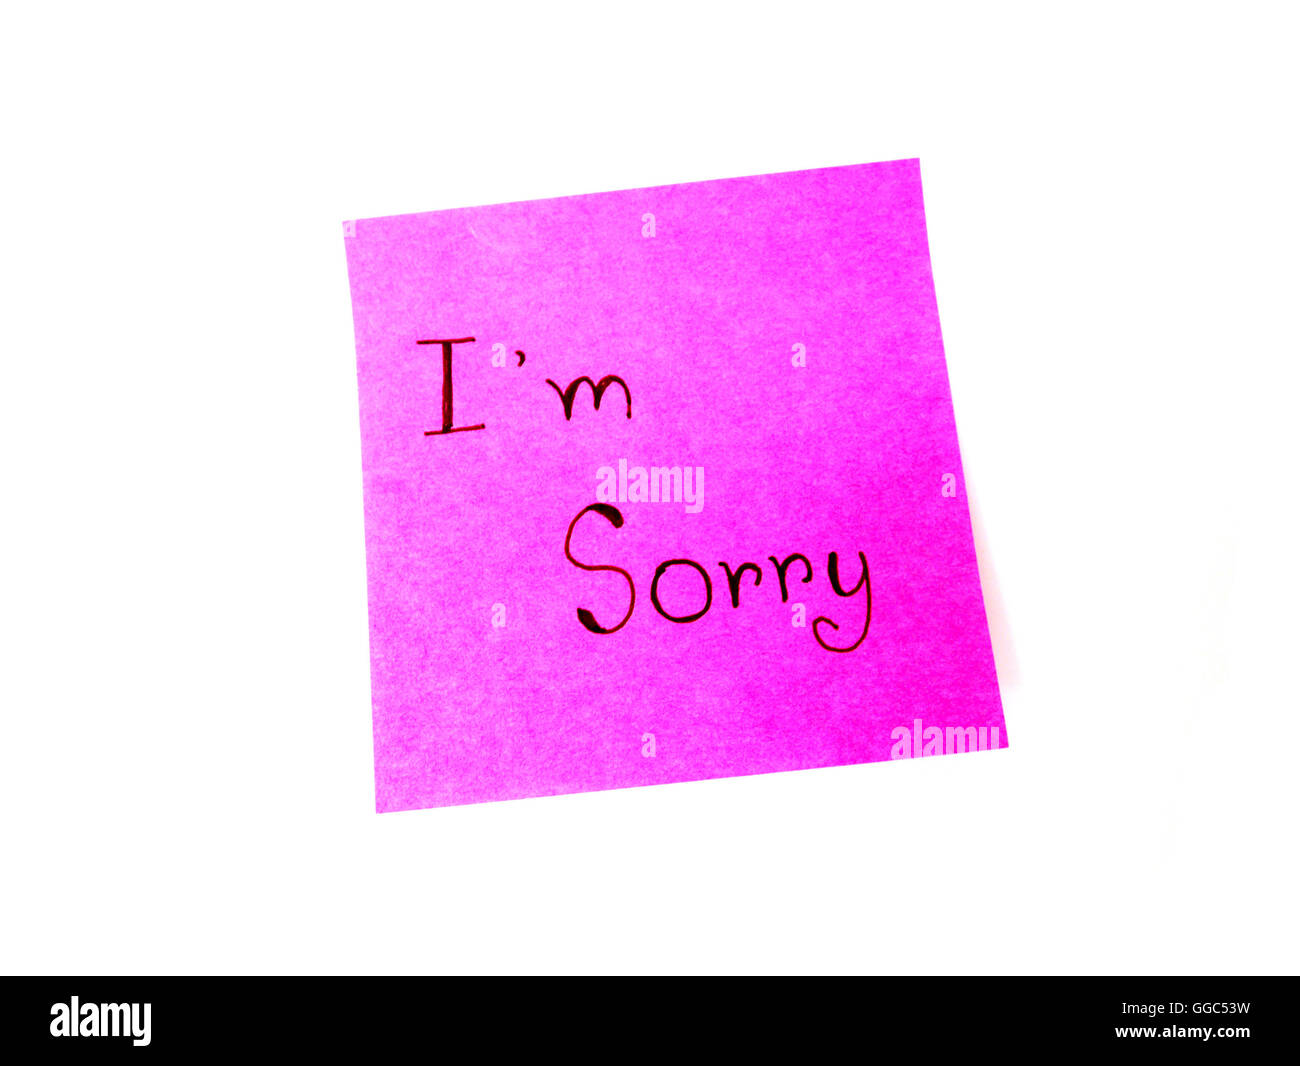 I'm sorry in post it note on white background - Stock Image